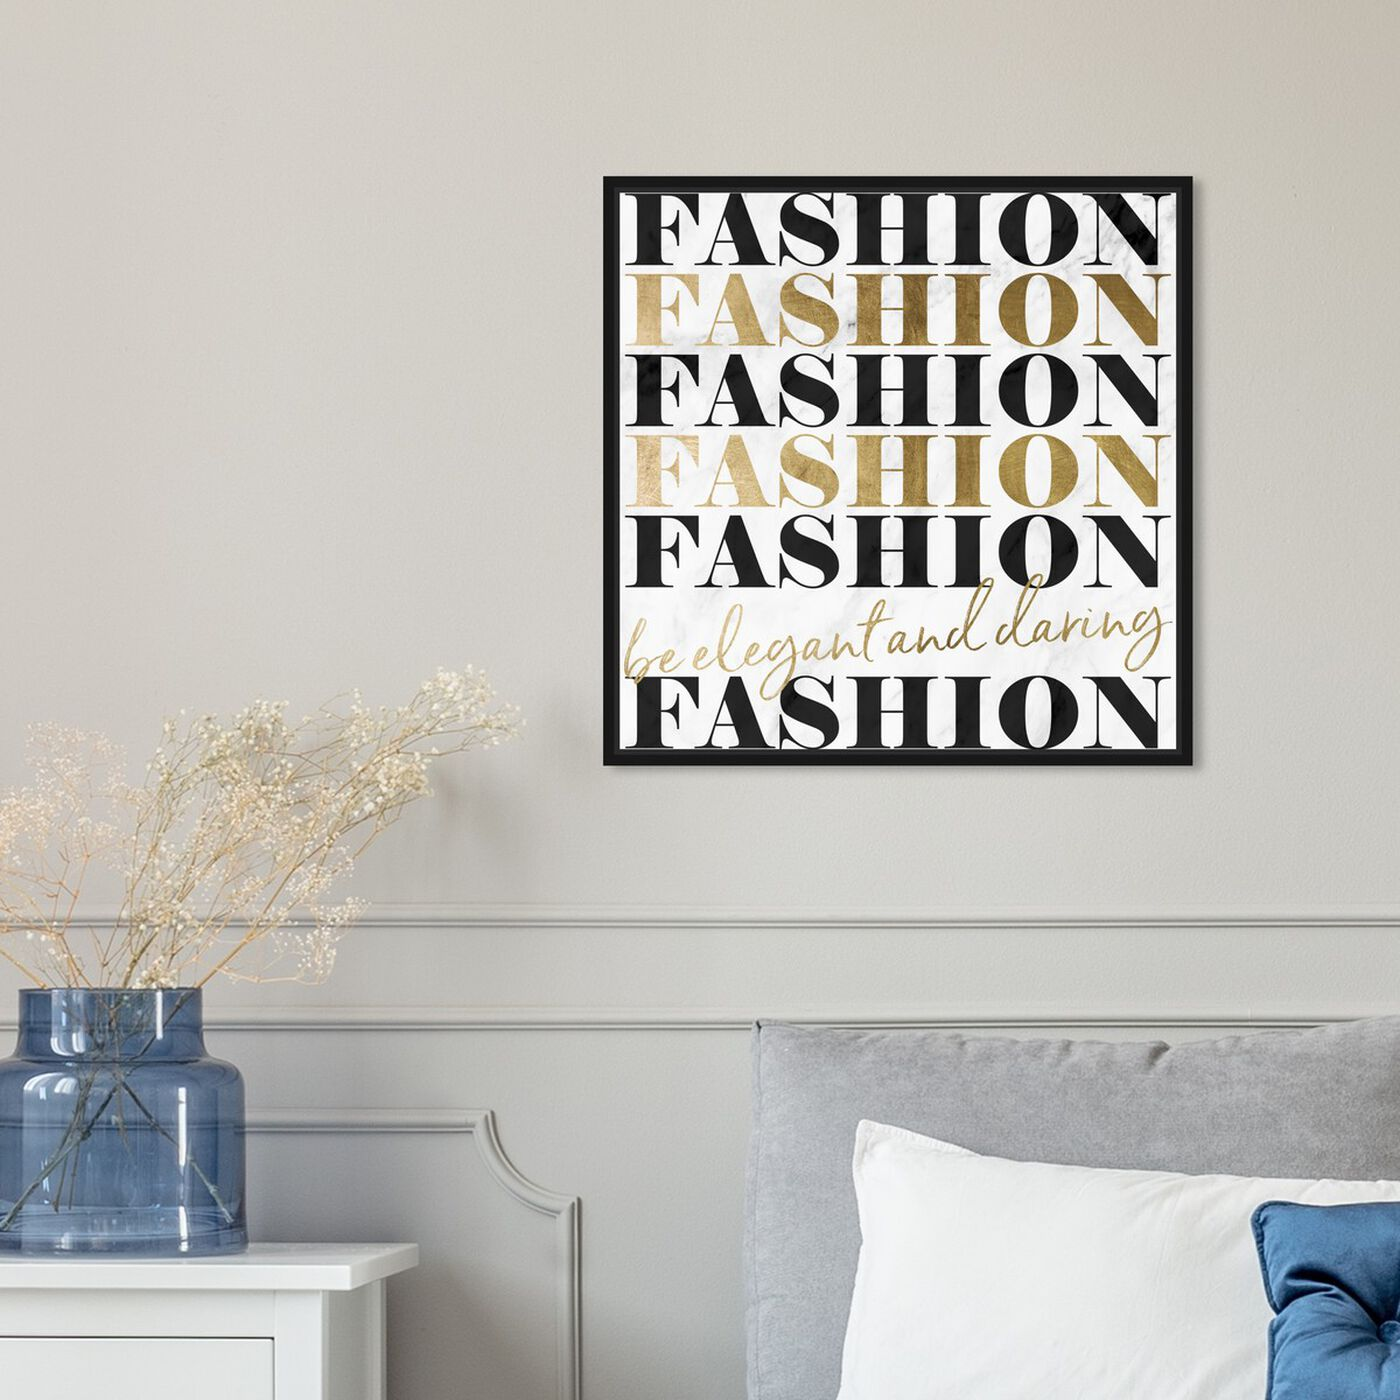 Hanging view of Be Elegant and Daring and Marble featuring typography and quotes and fashion quotes and sayings art.